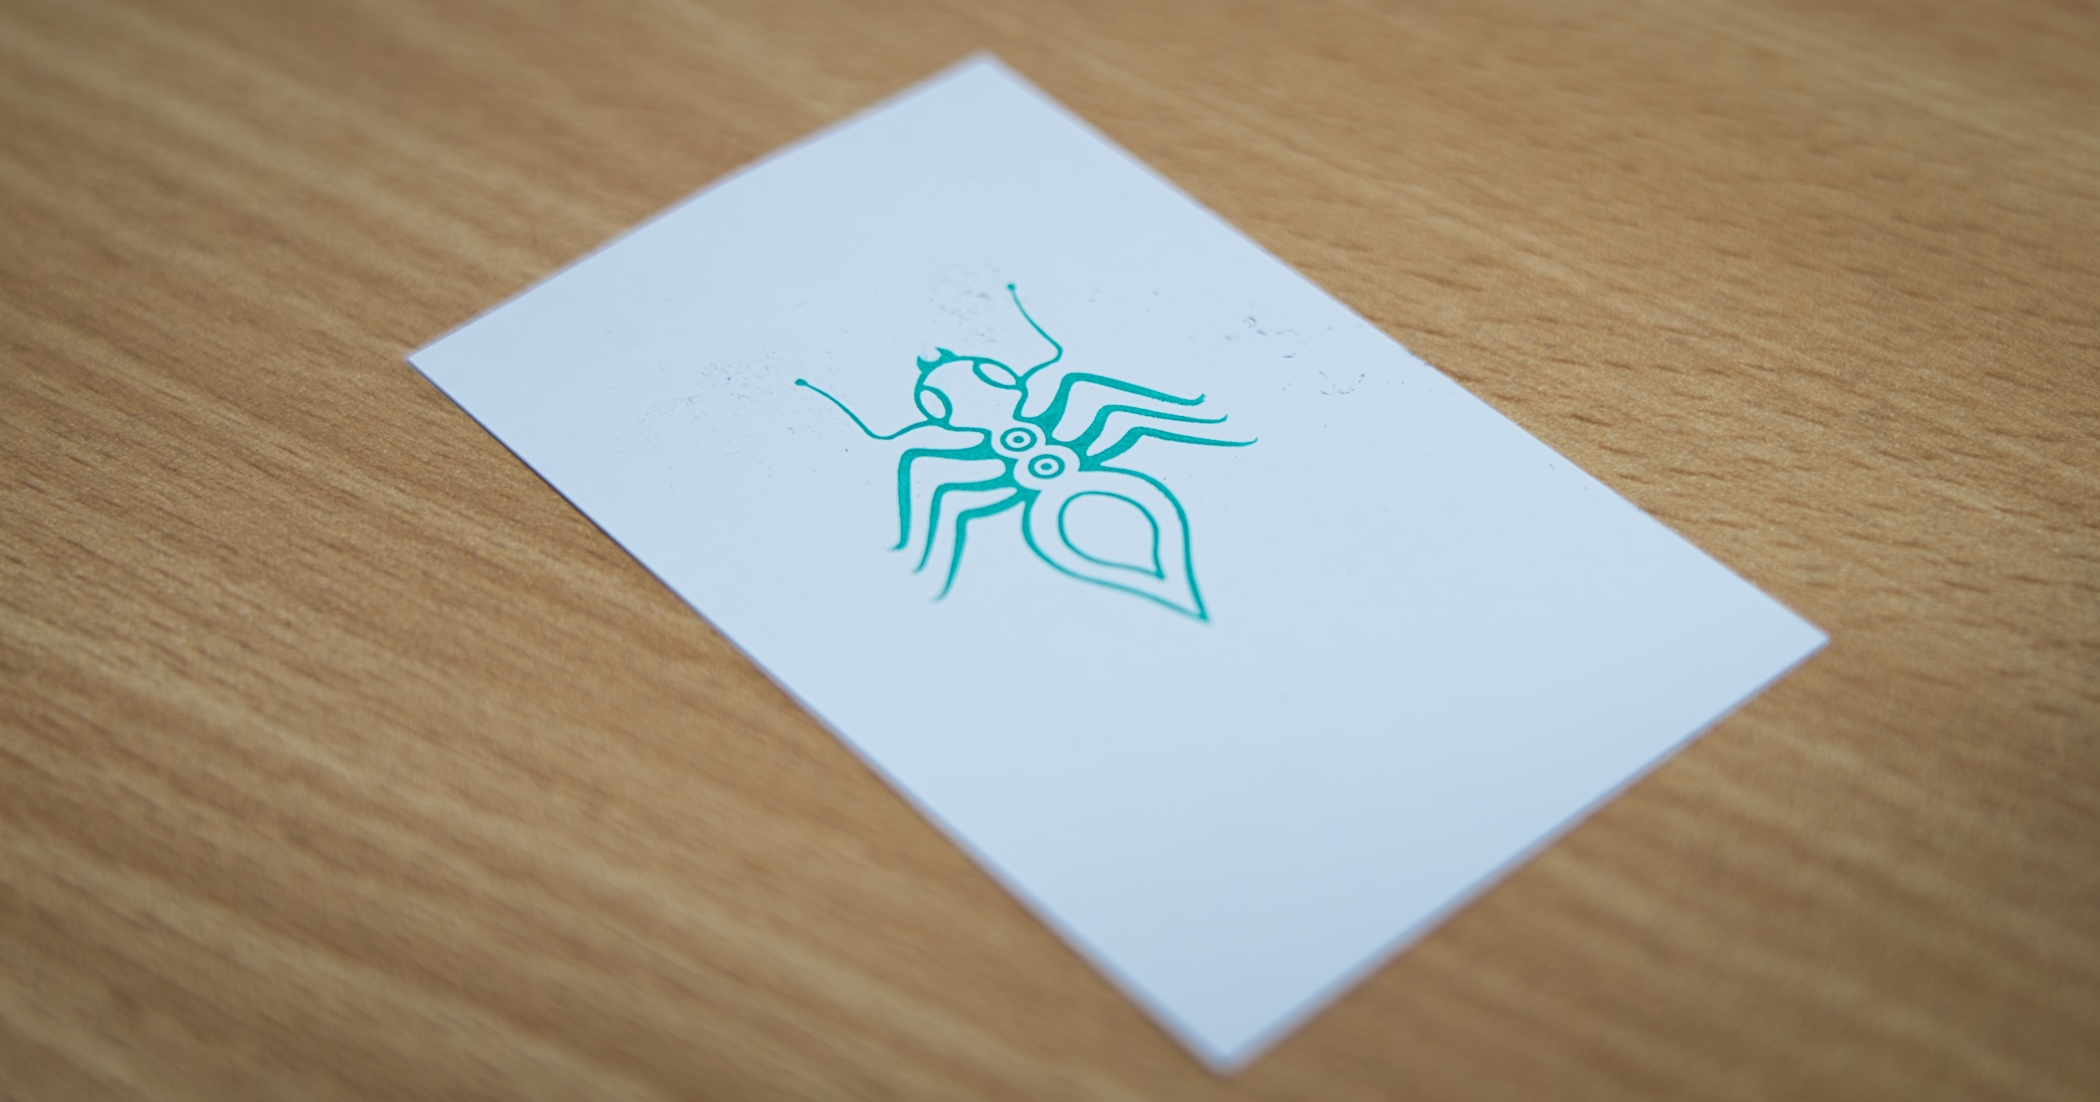 The Green Ant lives on the back of the new Pacifico cards.